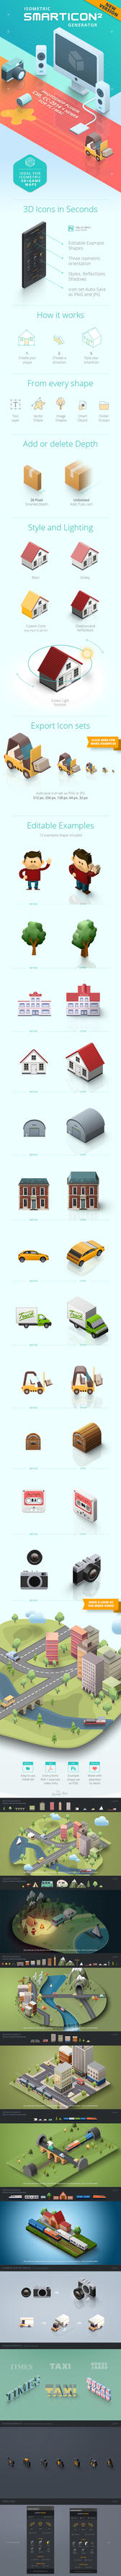 SmartIcon Generator 2 - Isometric 3D Icons by GraphicAssets